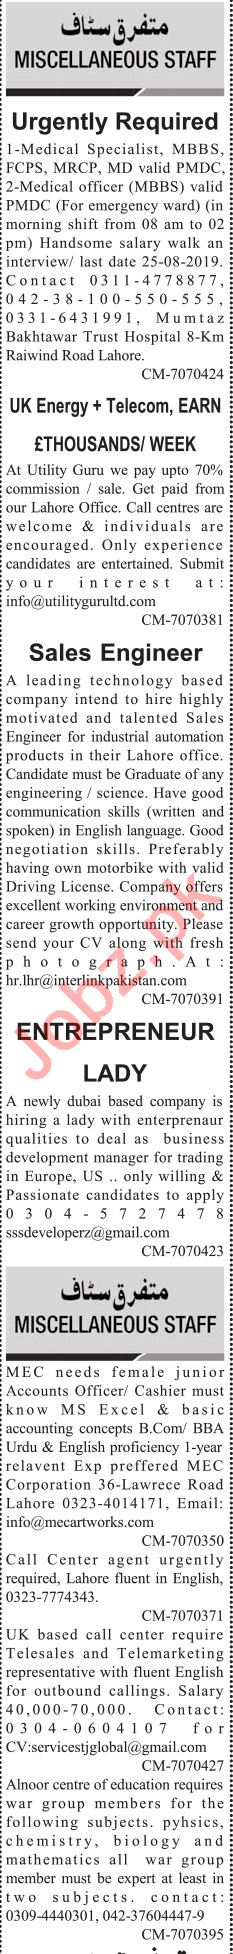 Jang Sunday Classified Ads 11th Aug 2019 for General Staff